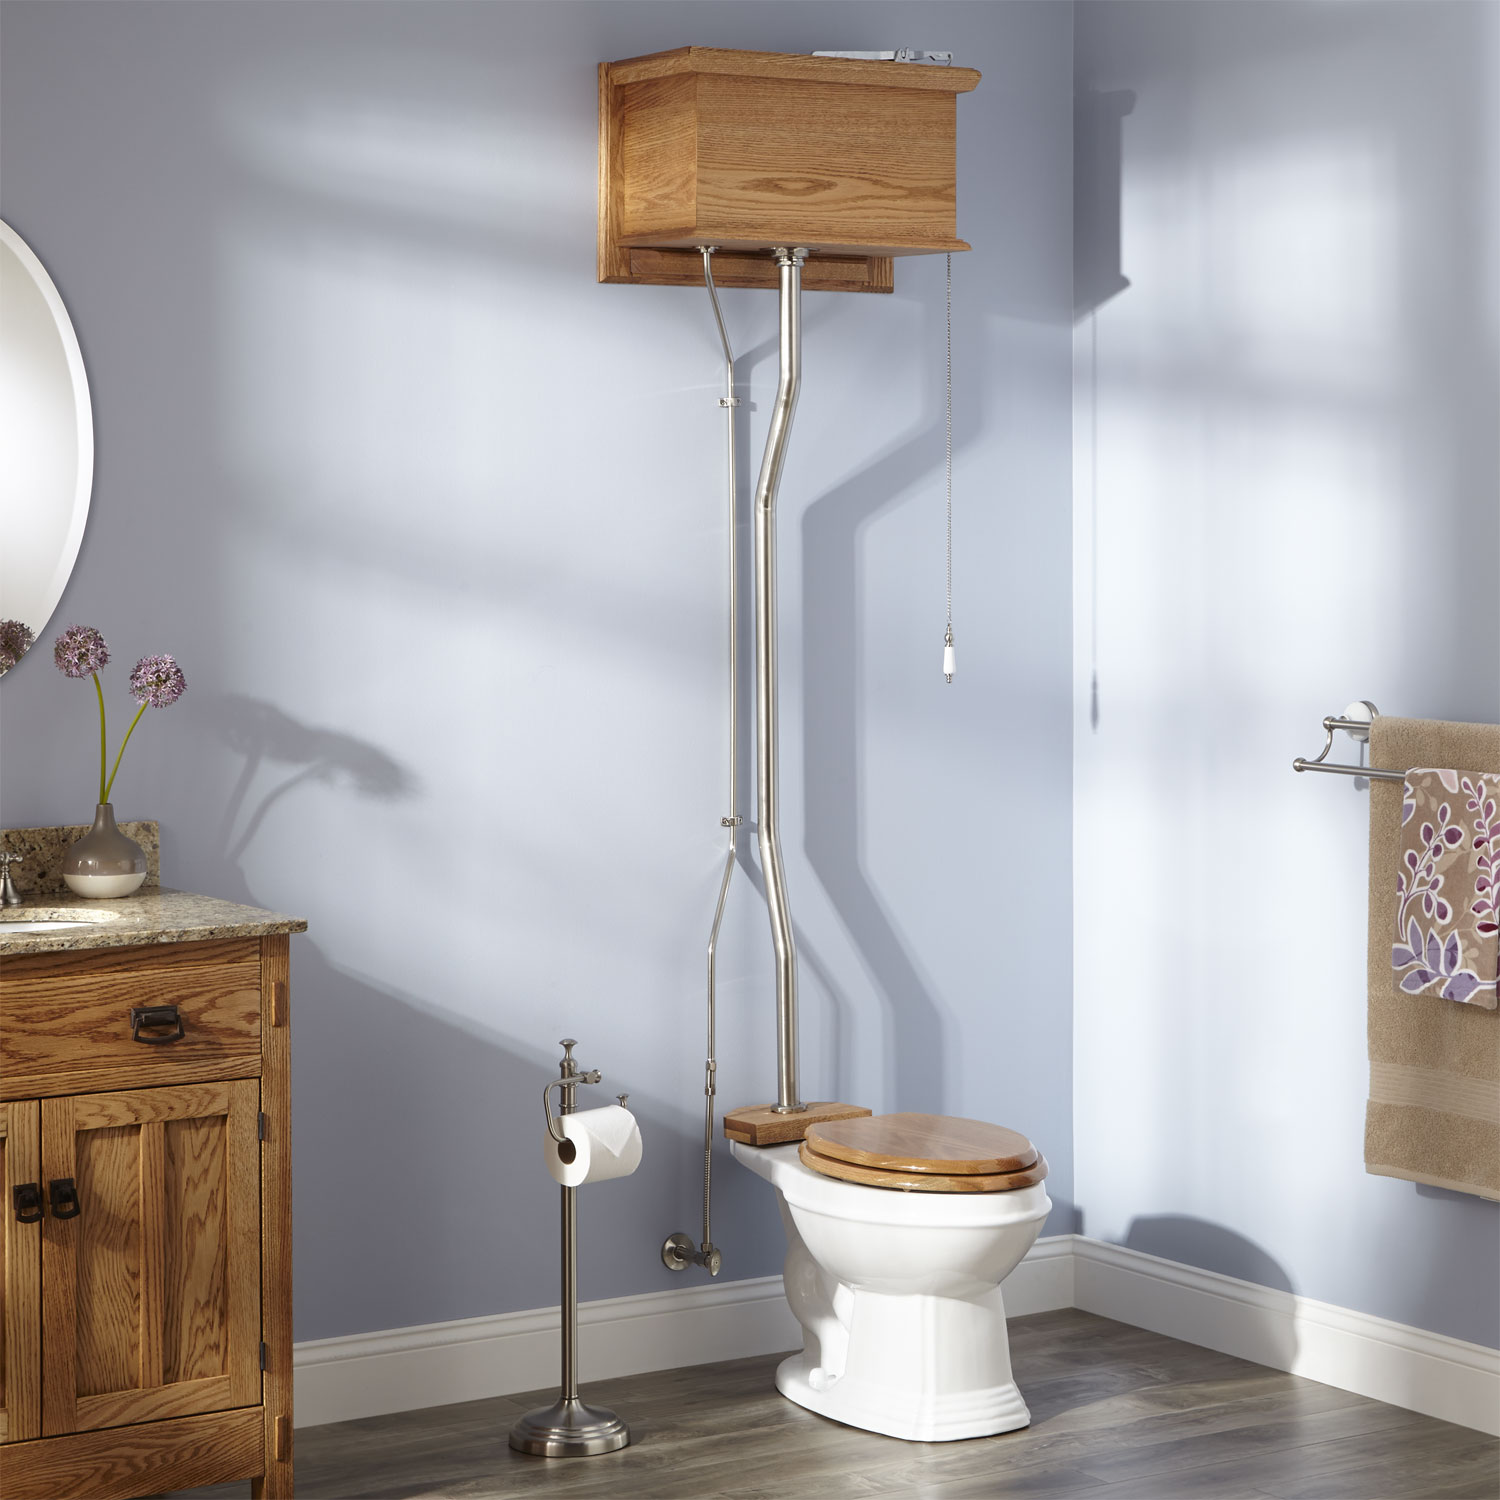 Elongated high tank pull-chain toilet in brushed nickel